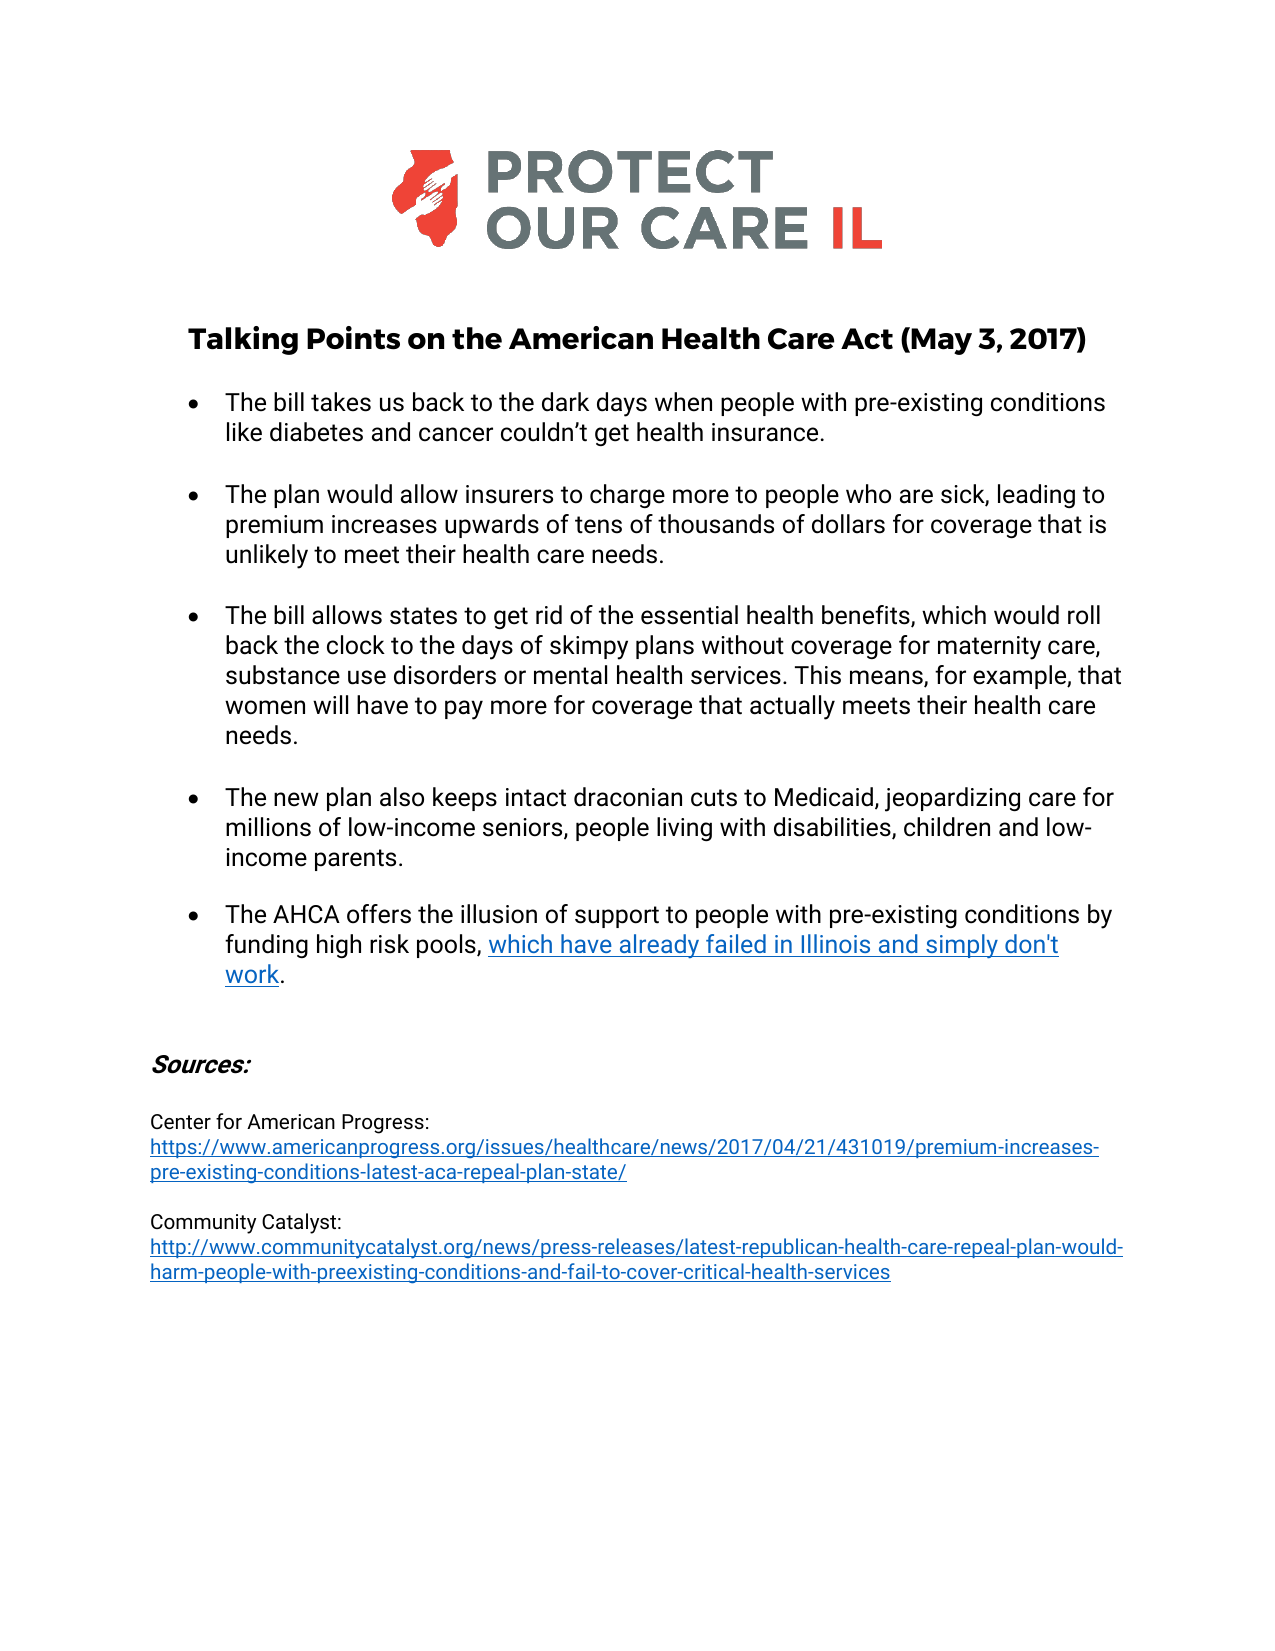 Talking Points On The American Health Care Act